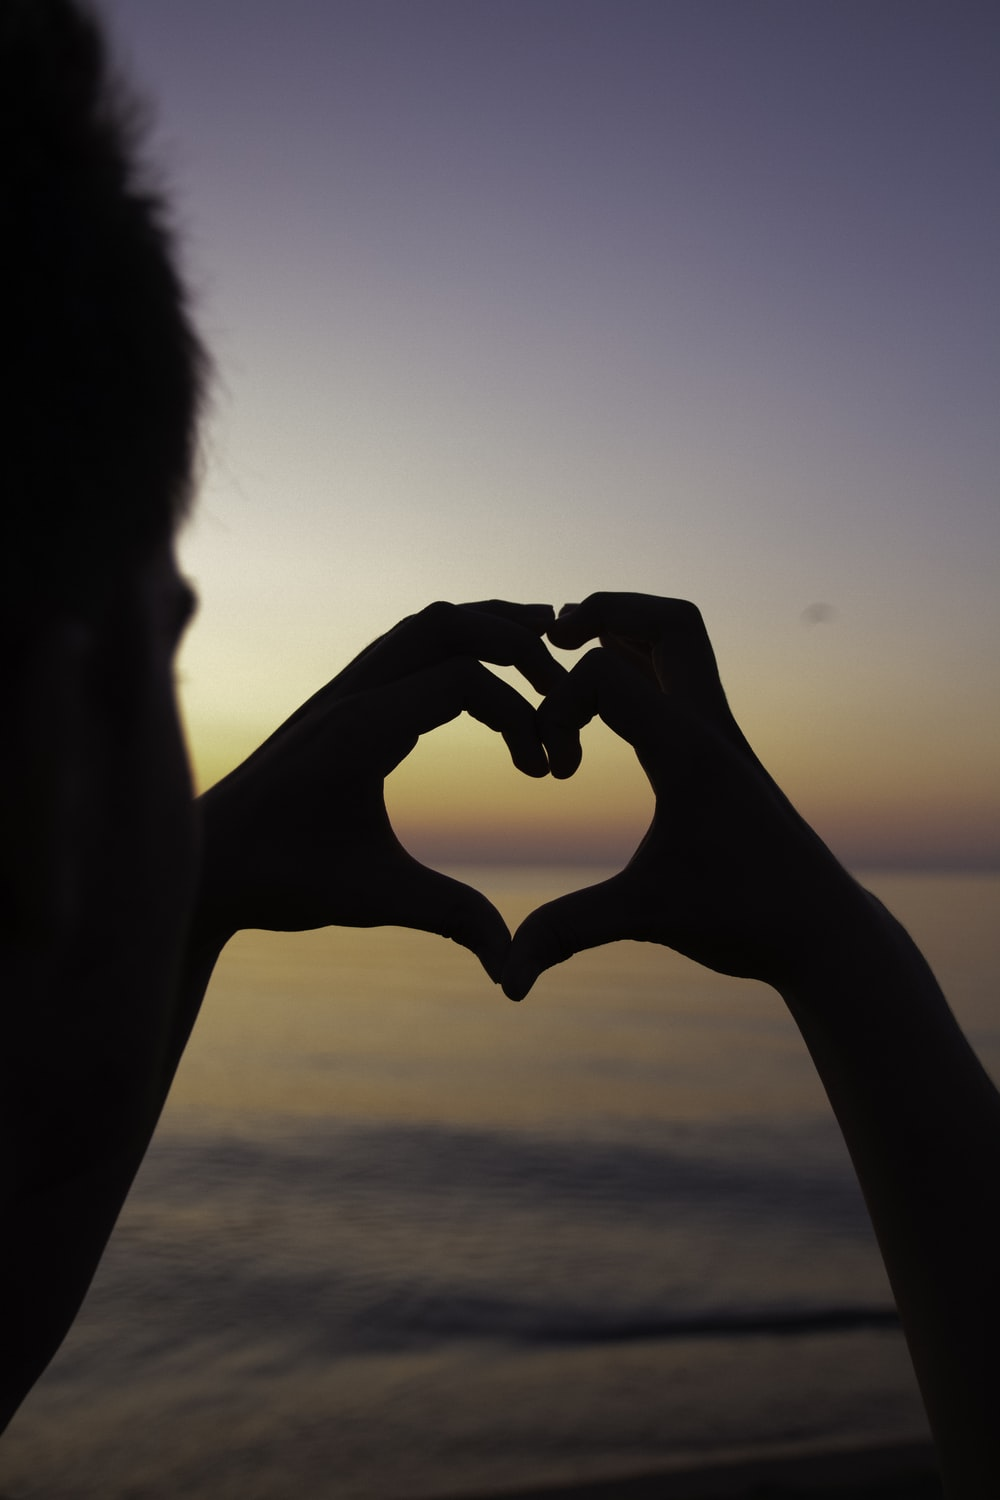 silhouette of person doing heart handsign